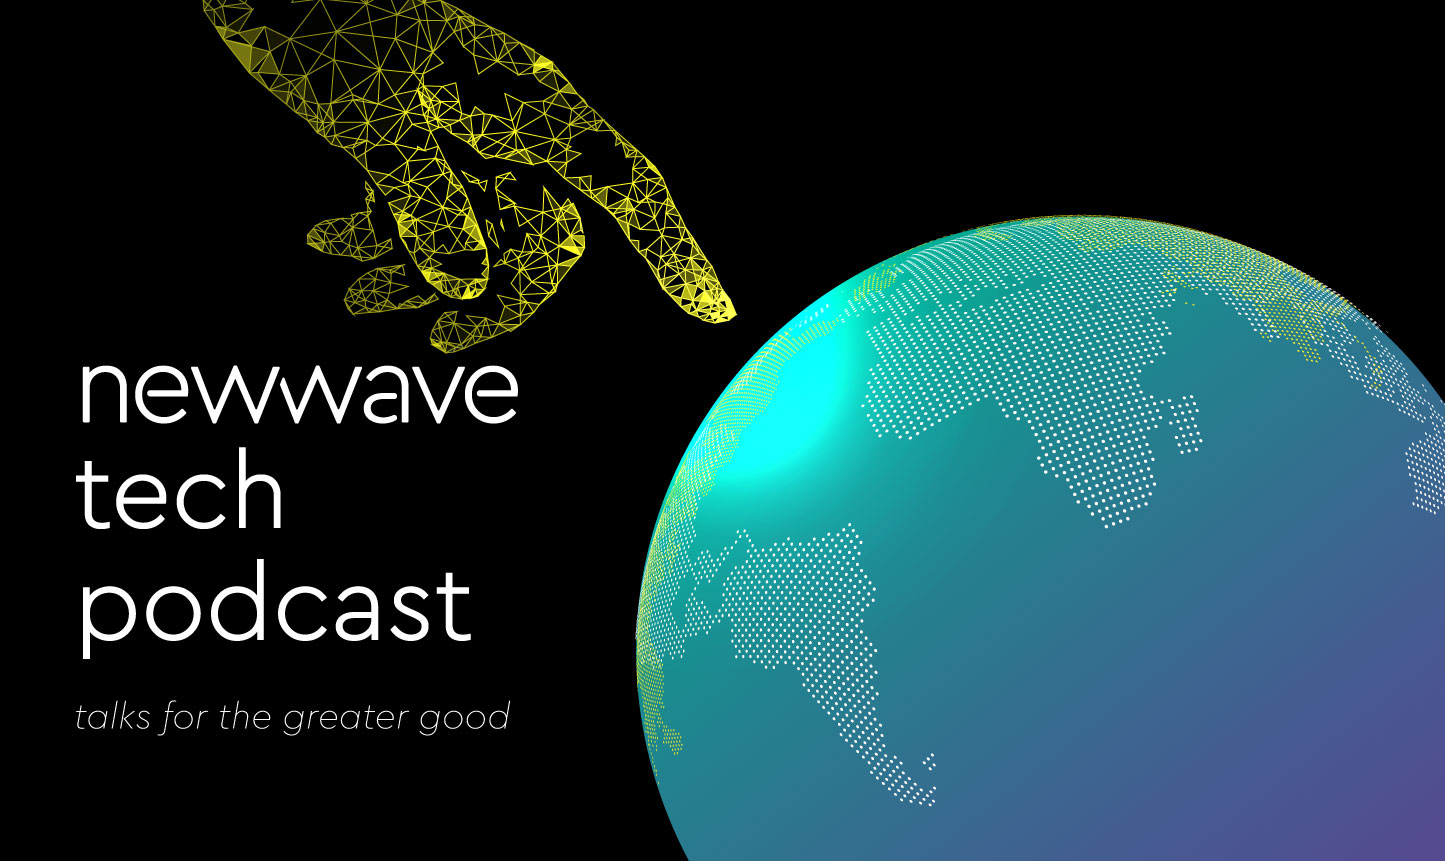 NewWave Tech Podcast Graphic